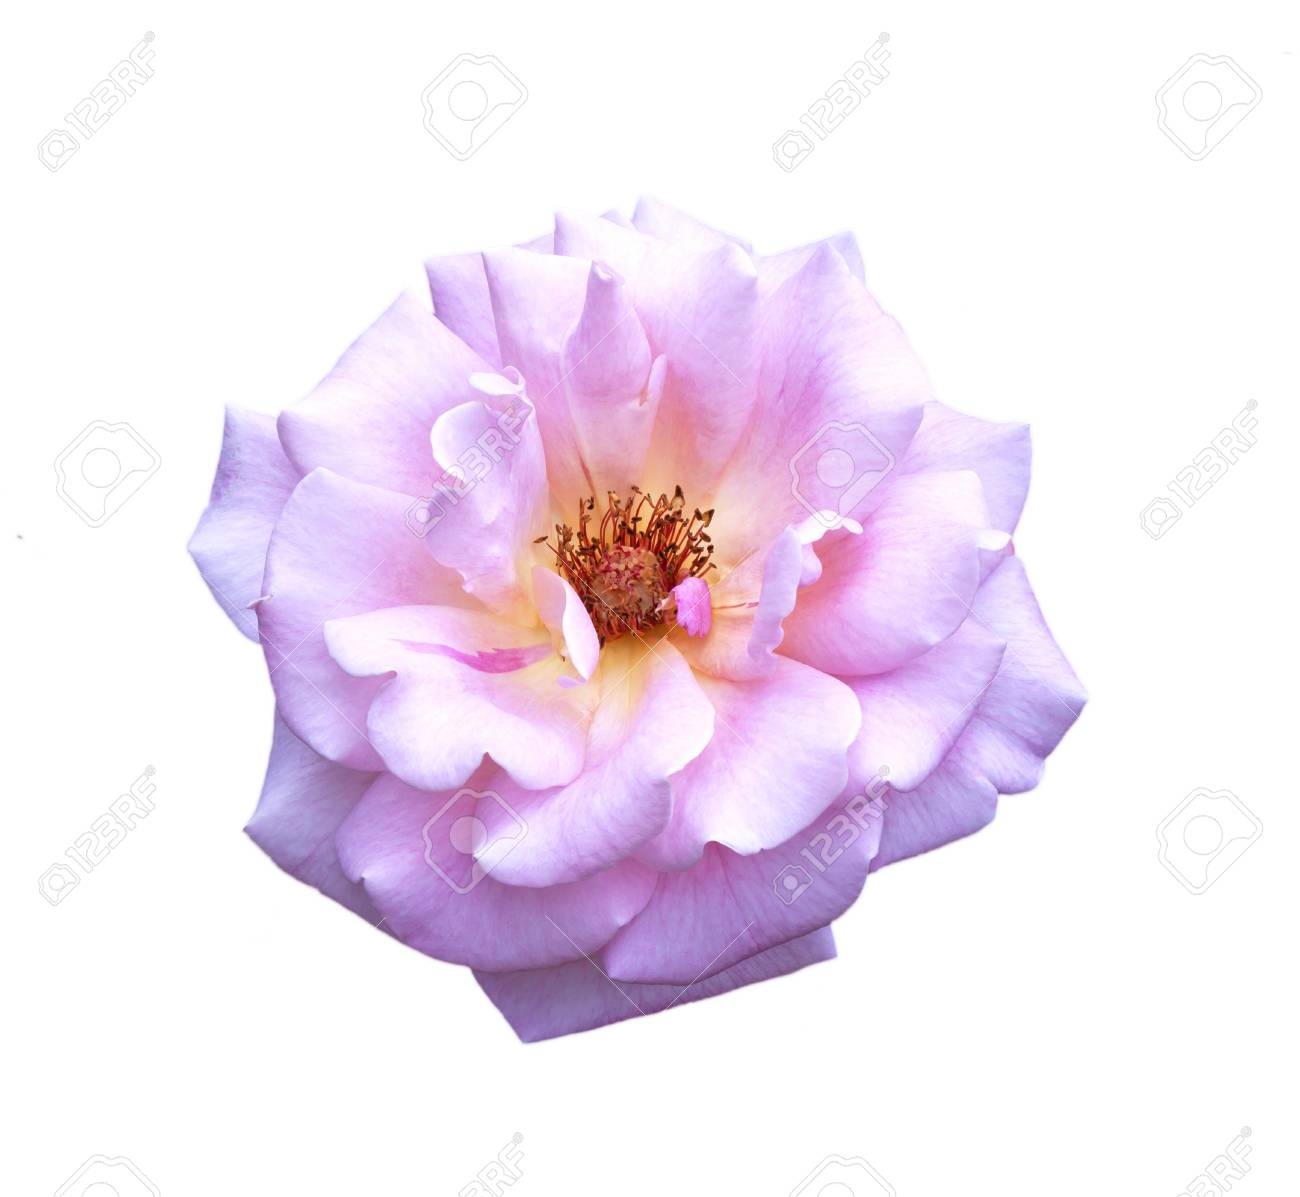 Rose pink flowers isolated on white background stock photo picture rose pink flowers isolated on white background stock photo 50692534 mightylinksfo